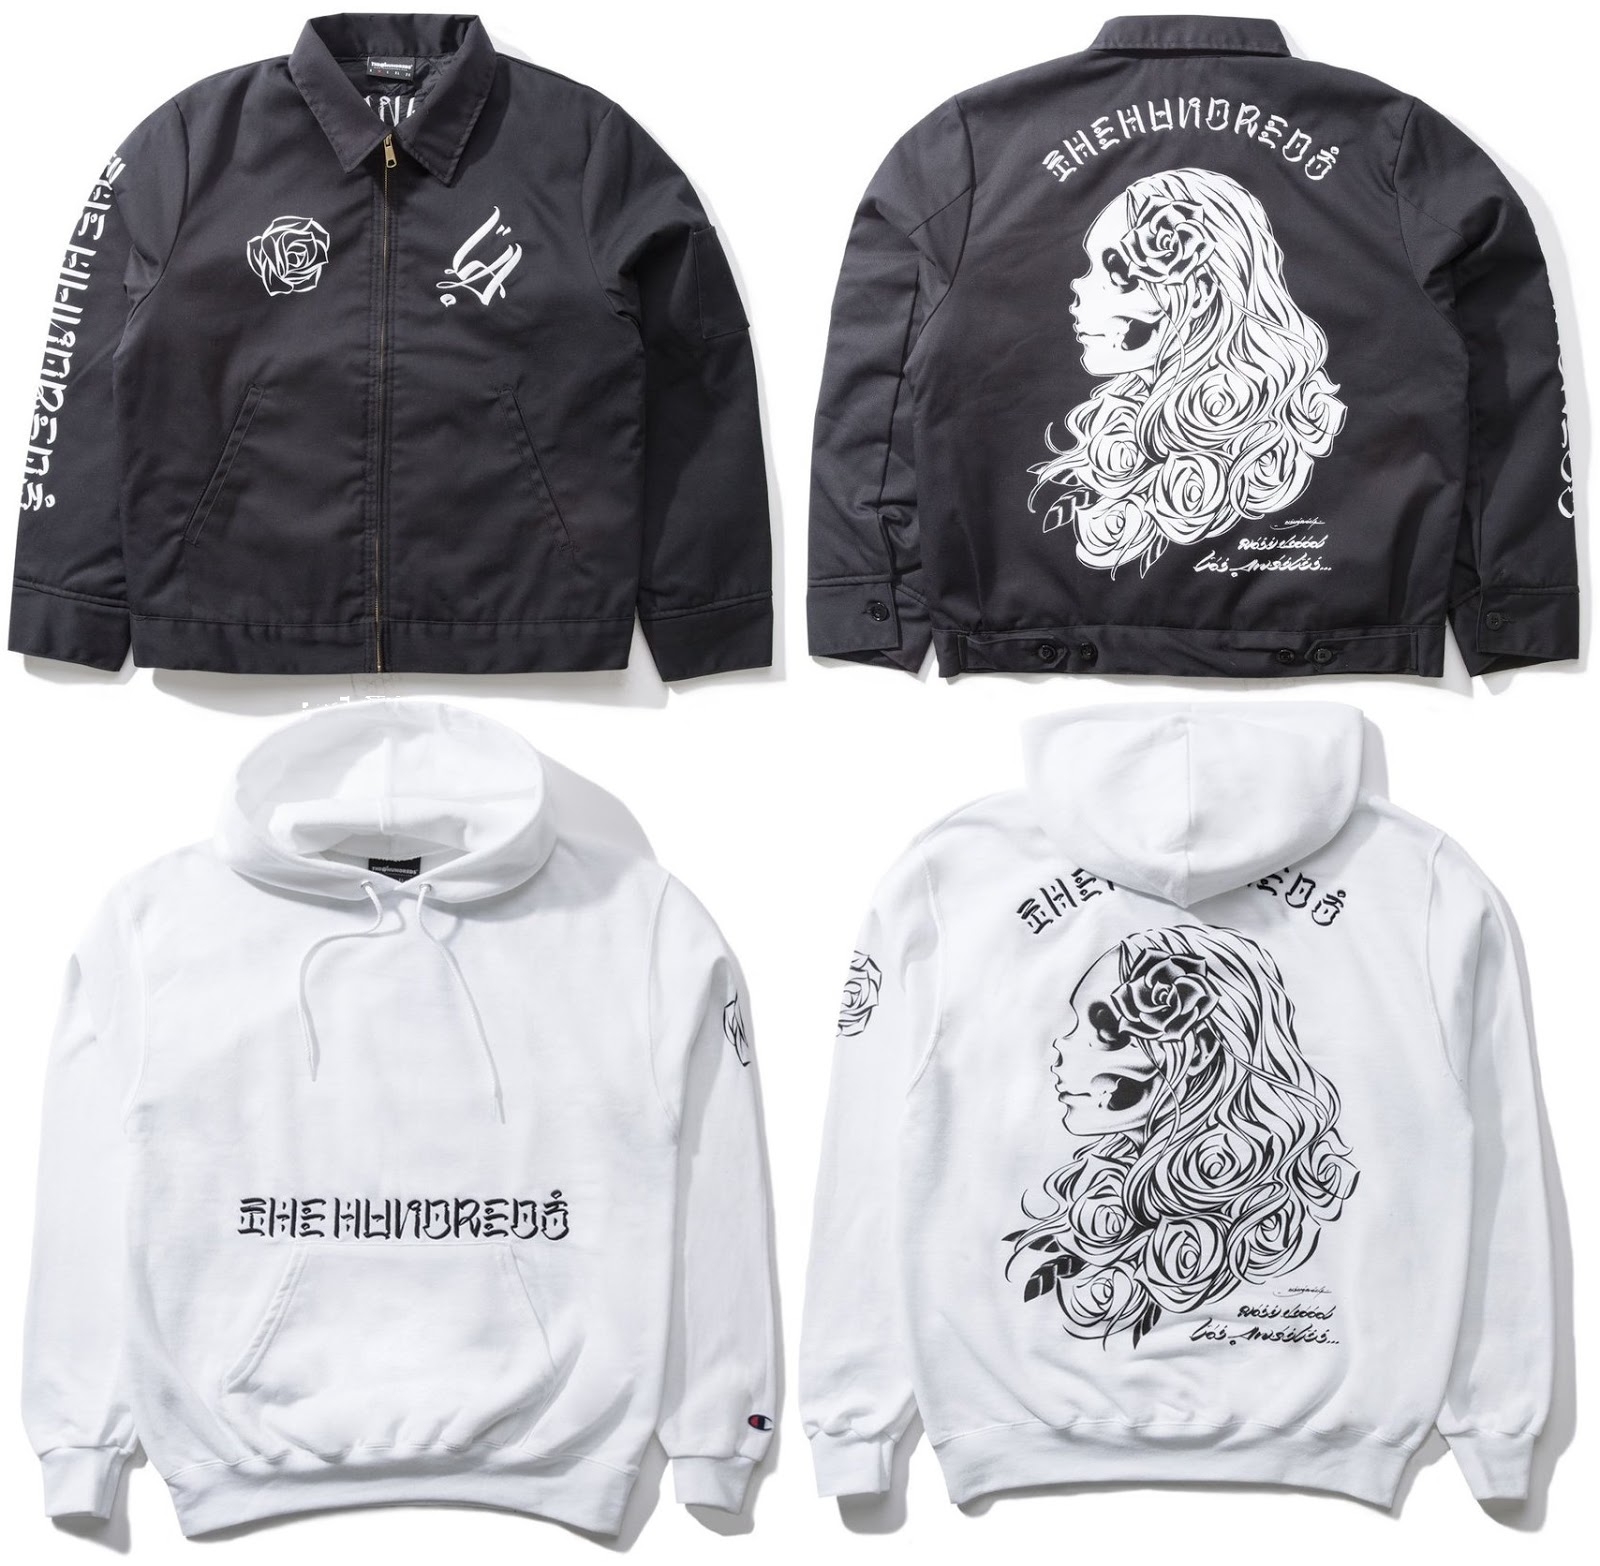 a0e2c80f40bc The Blot Says...  The Hundreds by Usugrow Apparel Capsule Collection